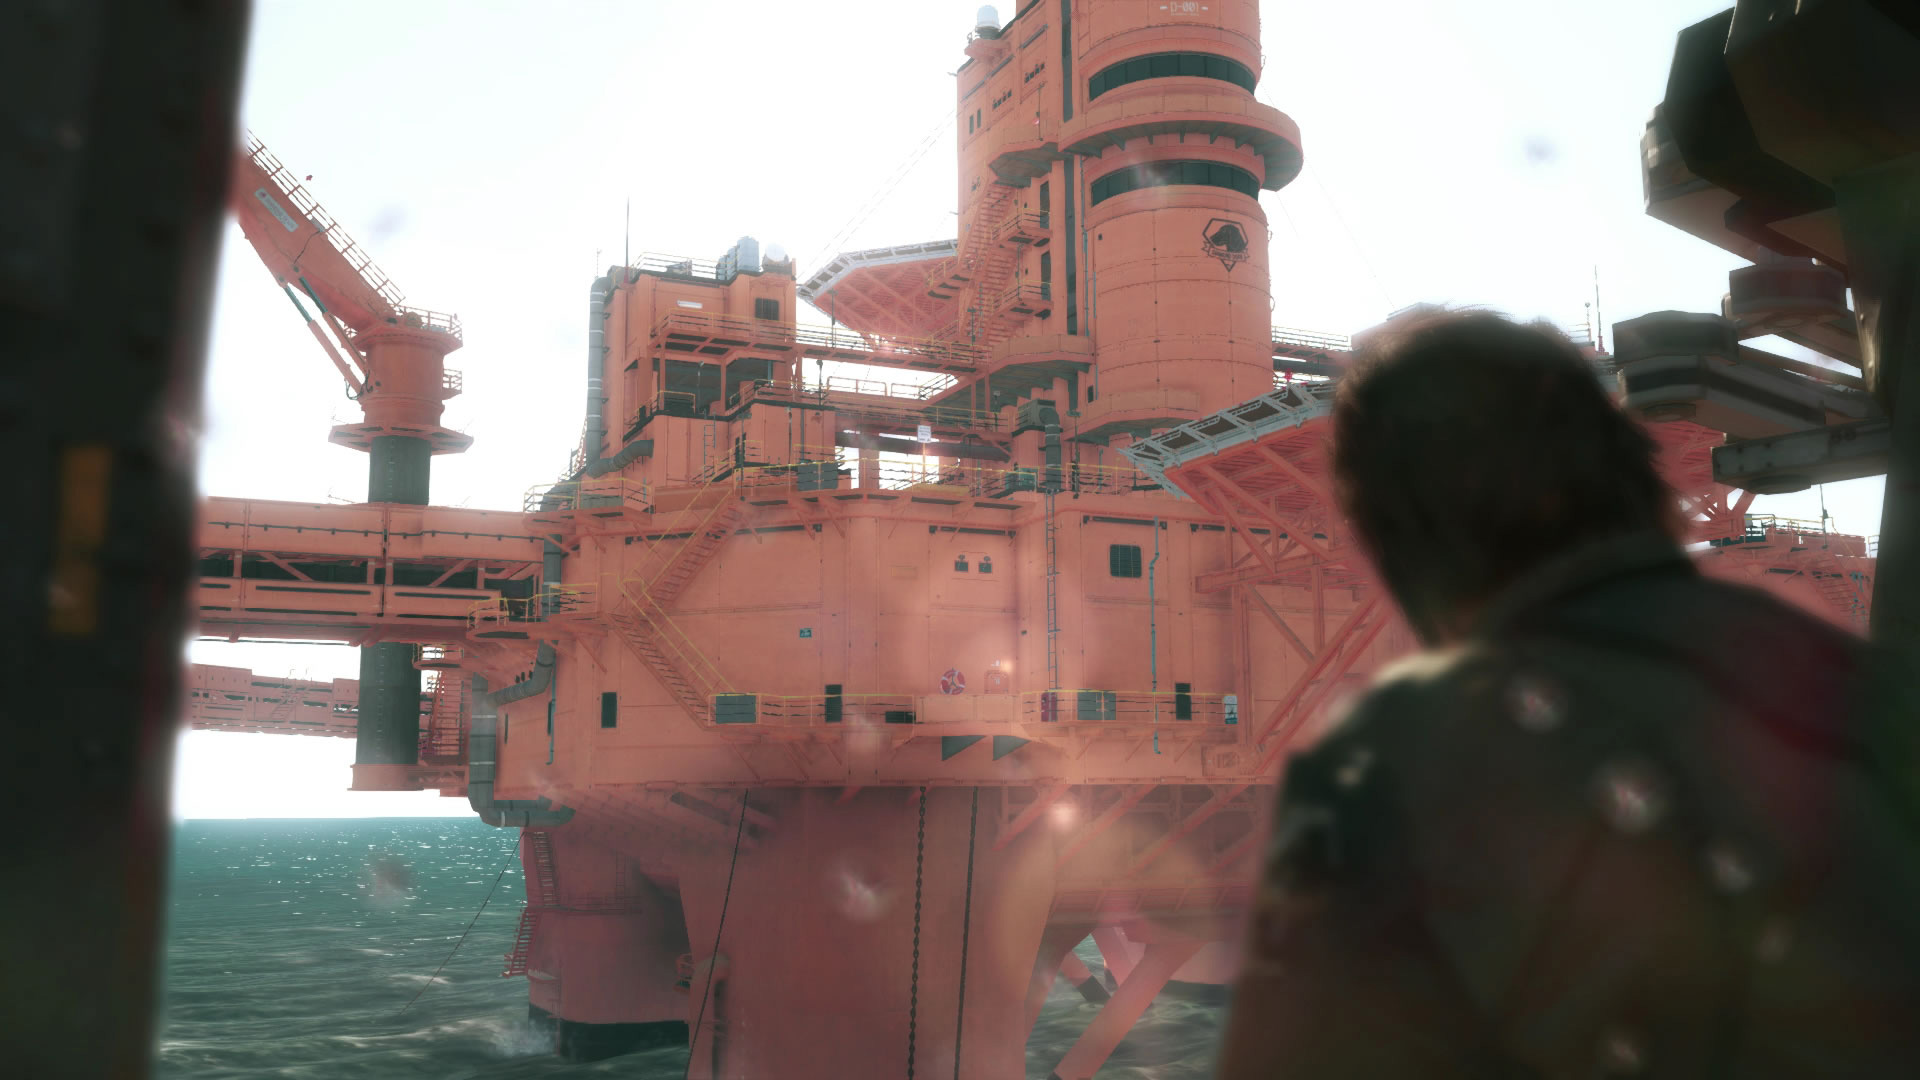 Metal-Gear-Solid-V-The-Phantom-Pain-E3-2015-Screen-Mother-Base-from-Helicopter